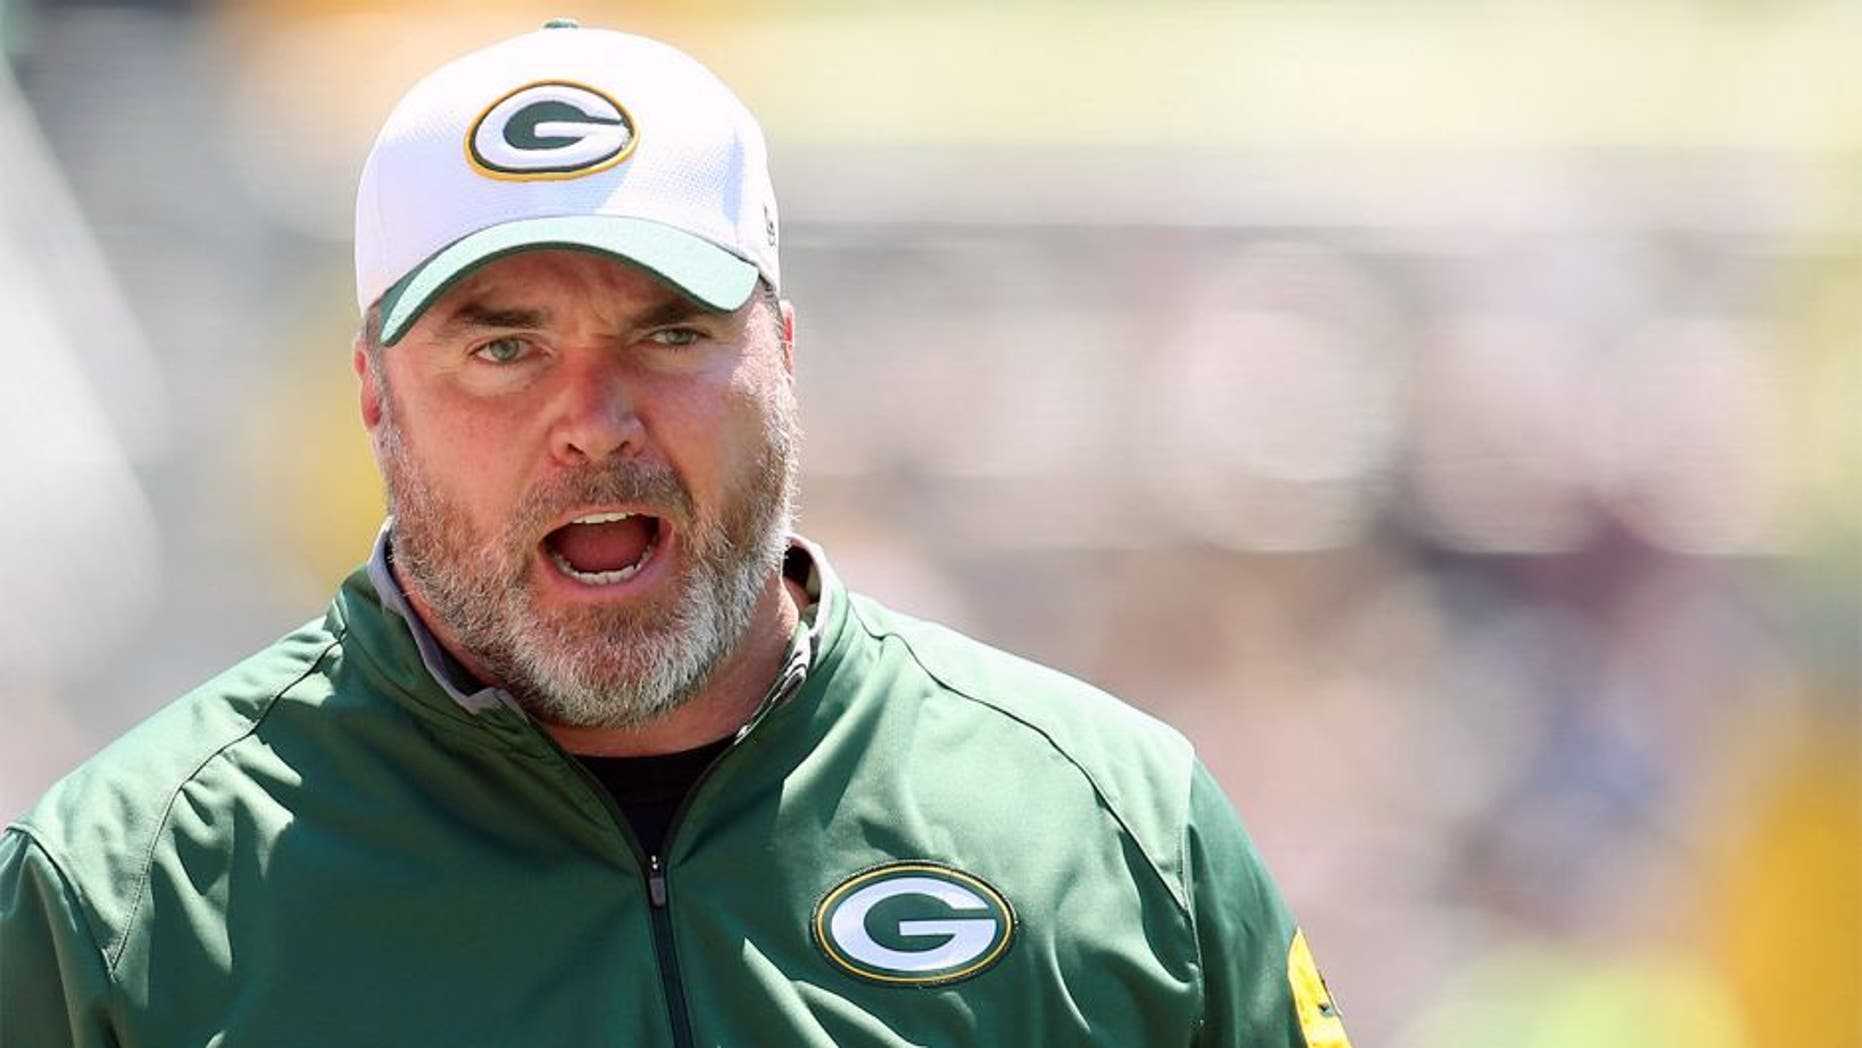 Aug 23, 2015; Pittsburgh, PA, USA; Green Bay Packers head coach Mike McCarthy reacts on the sidelines against the Pittsburgh Steelers during the second quarter at Heinz Field. Mandatory Credit: Charles LeClaire-USA TODAY Sports